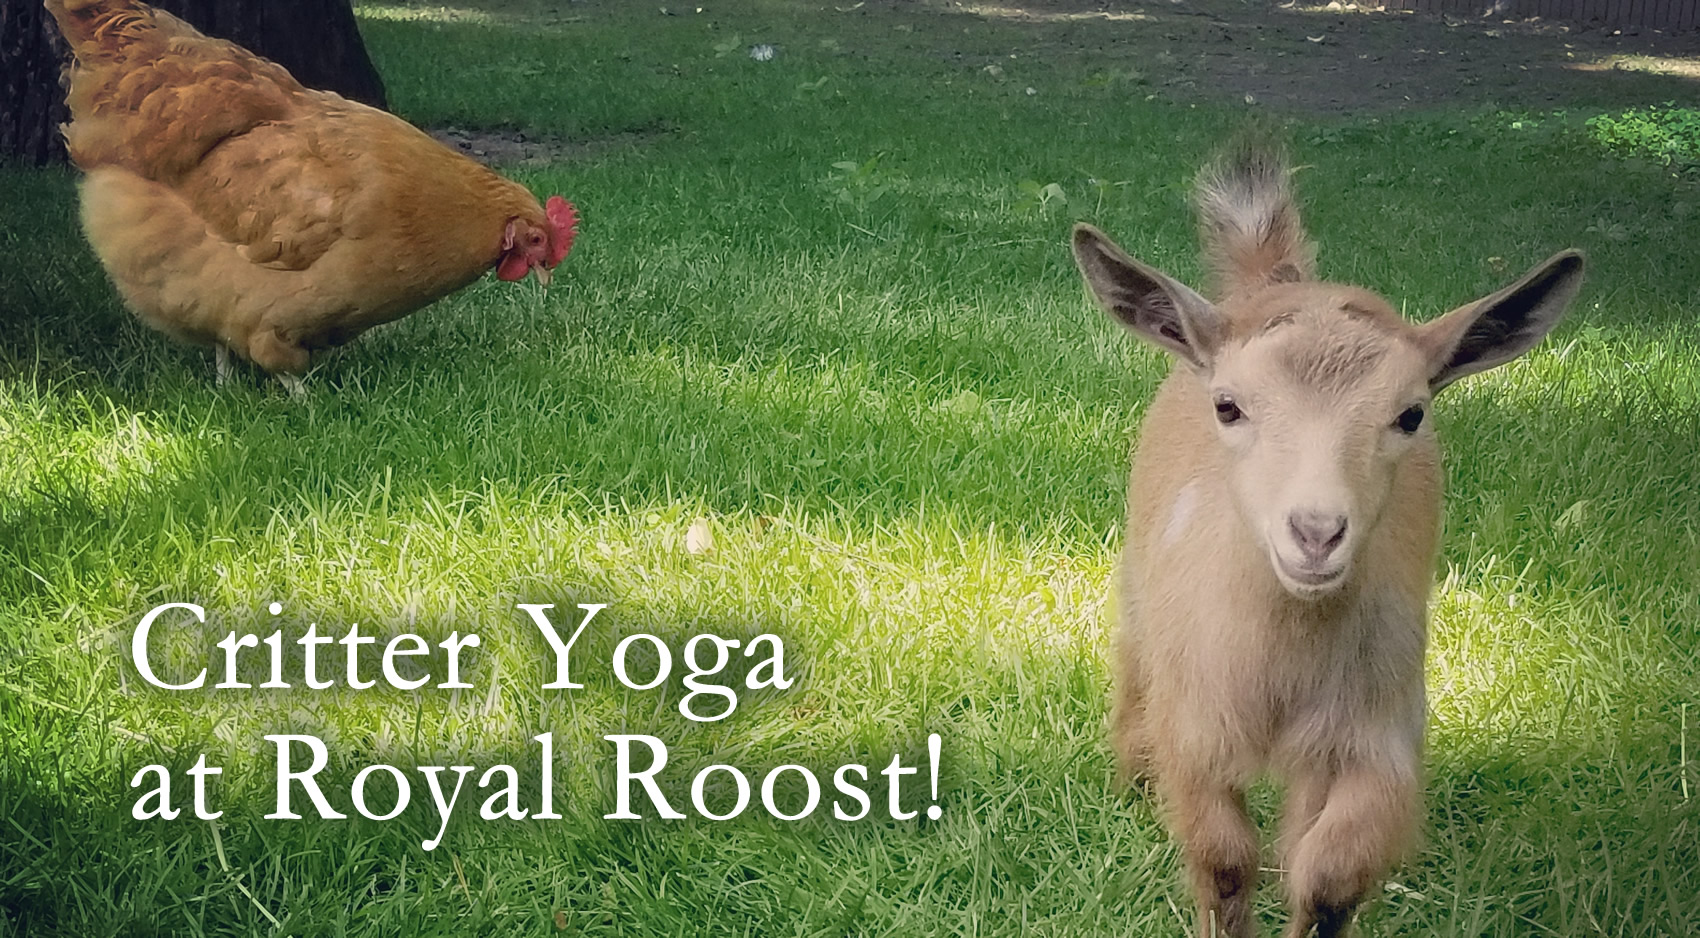 Critter Yoga at Royal Roost event